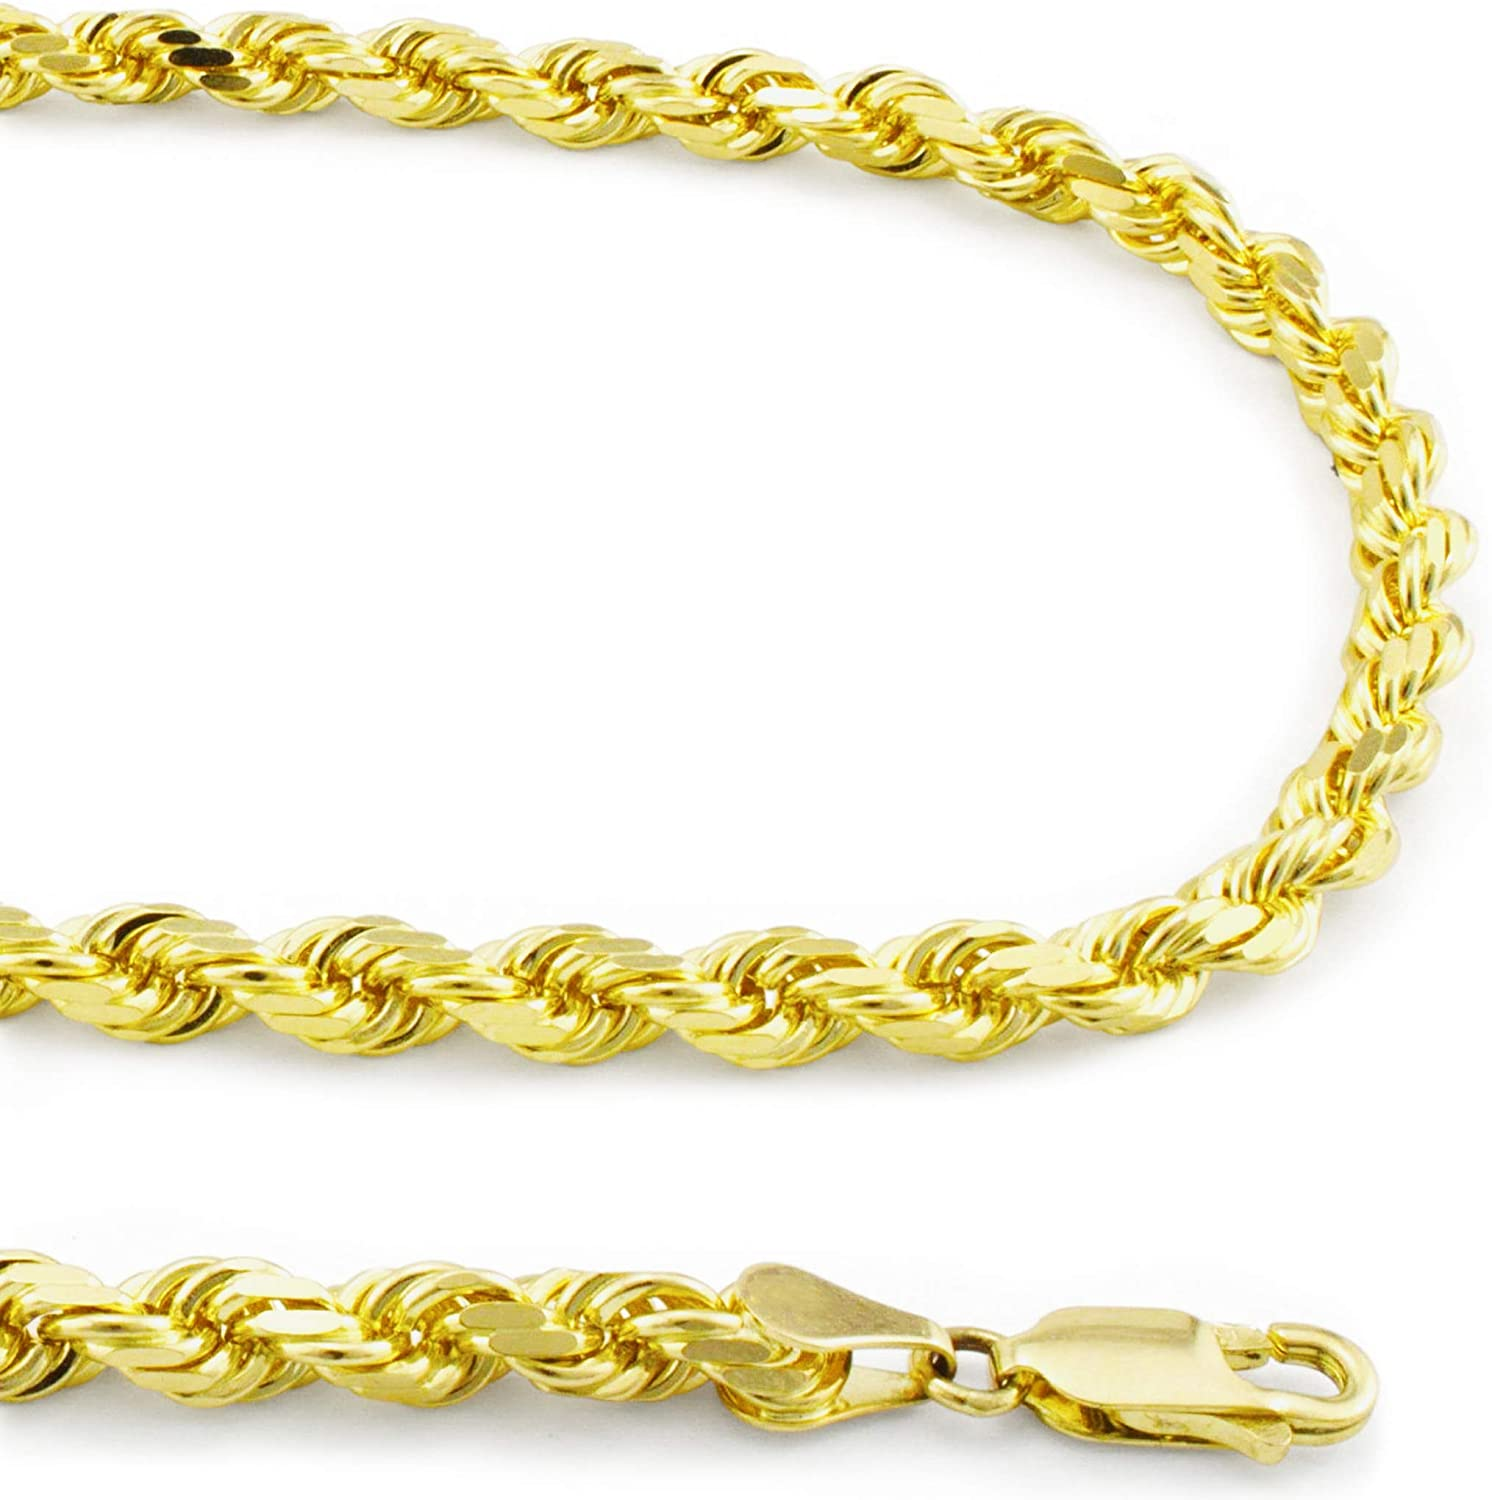 Nuragold 10k Yellow Gold 4mm Rope Chain Diamond Cut Pendant Necklace, Mens Womens Lobster Lock 20